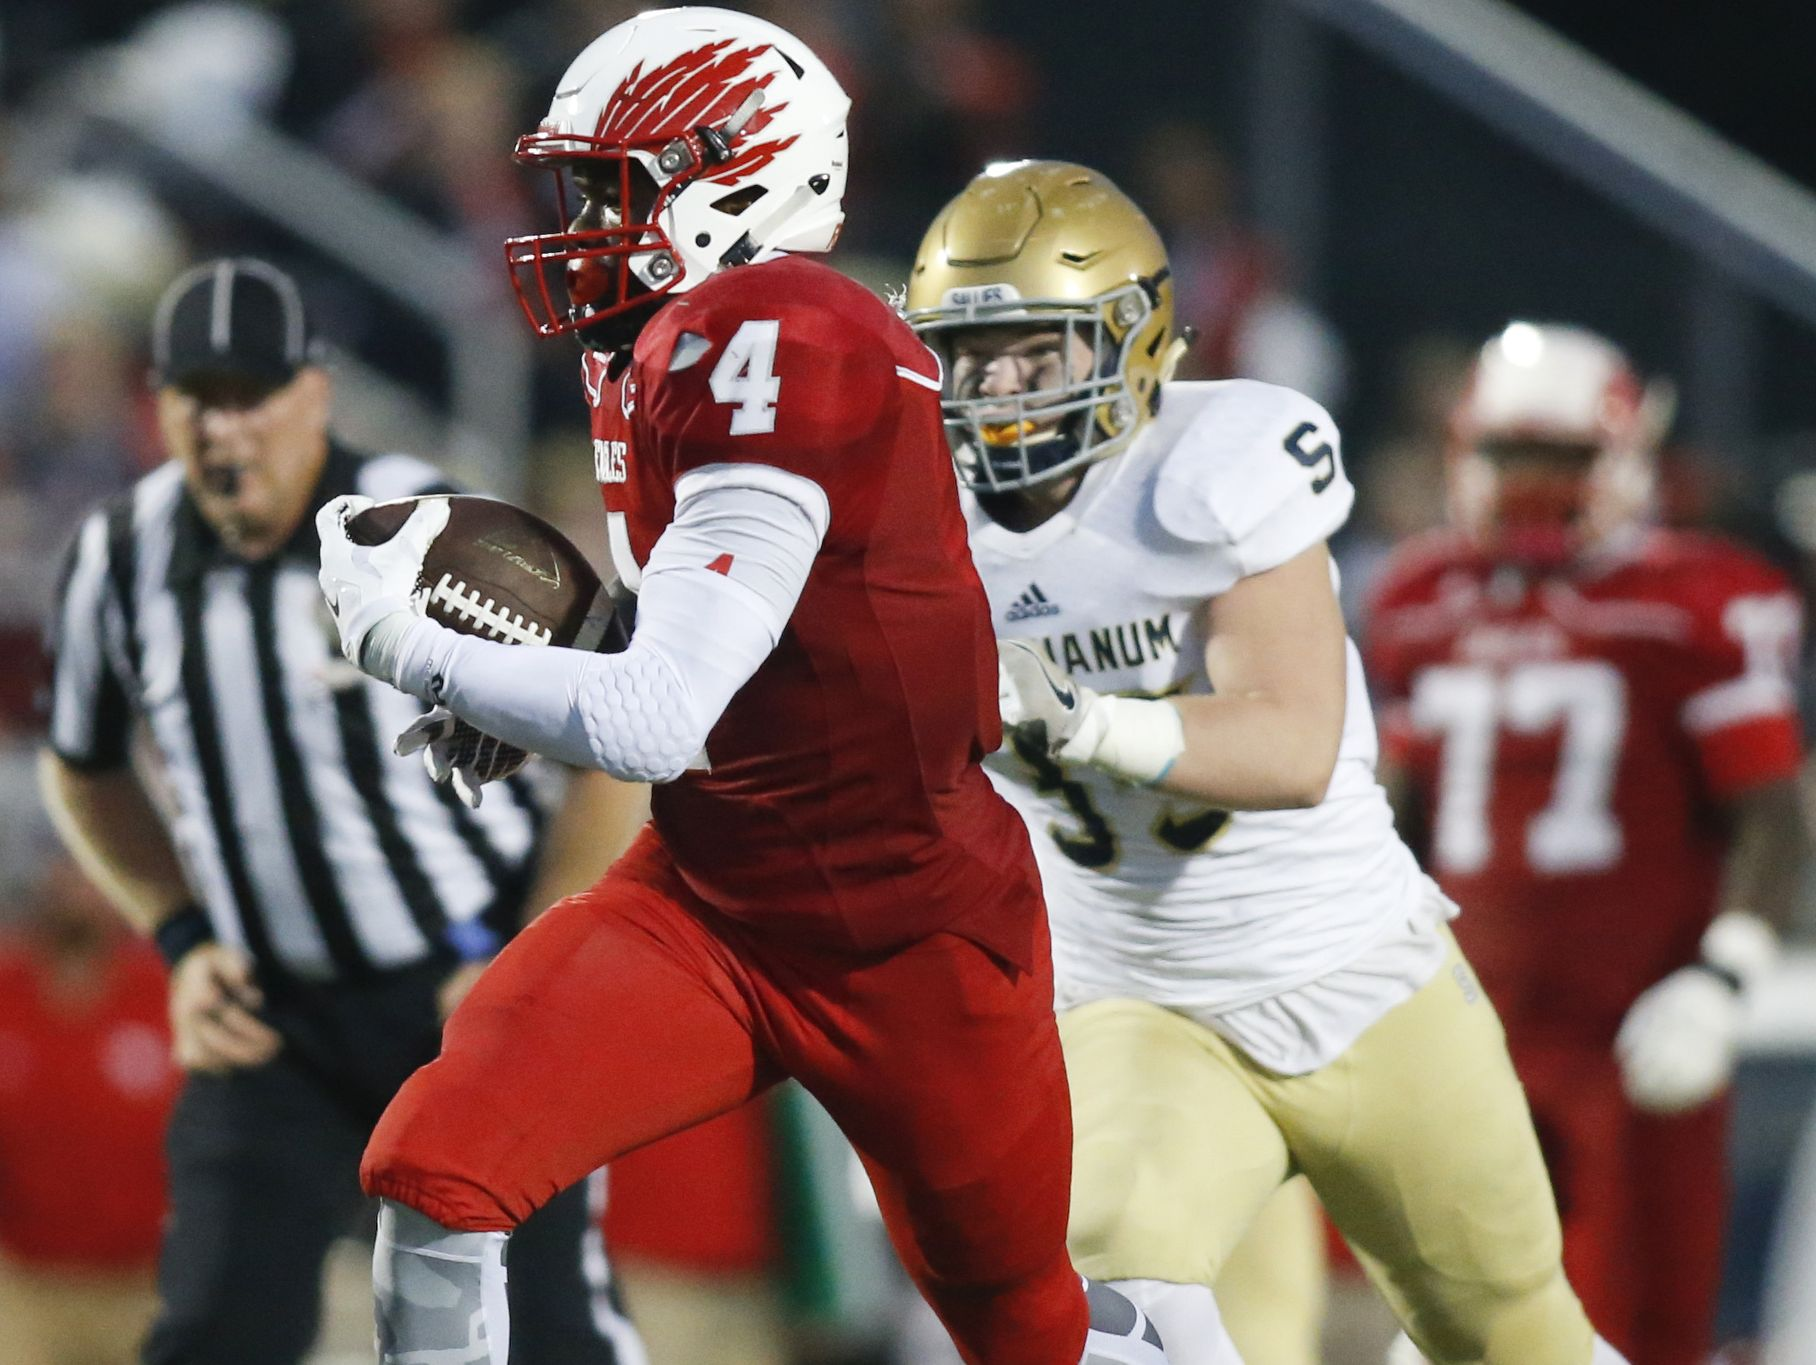 Smyrna offensive lineman Jerren Carter (77) watches after helping to spring running back Leddie Brown (4) for a touchdown Sept. 23 against Salesianum.